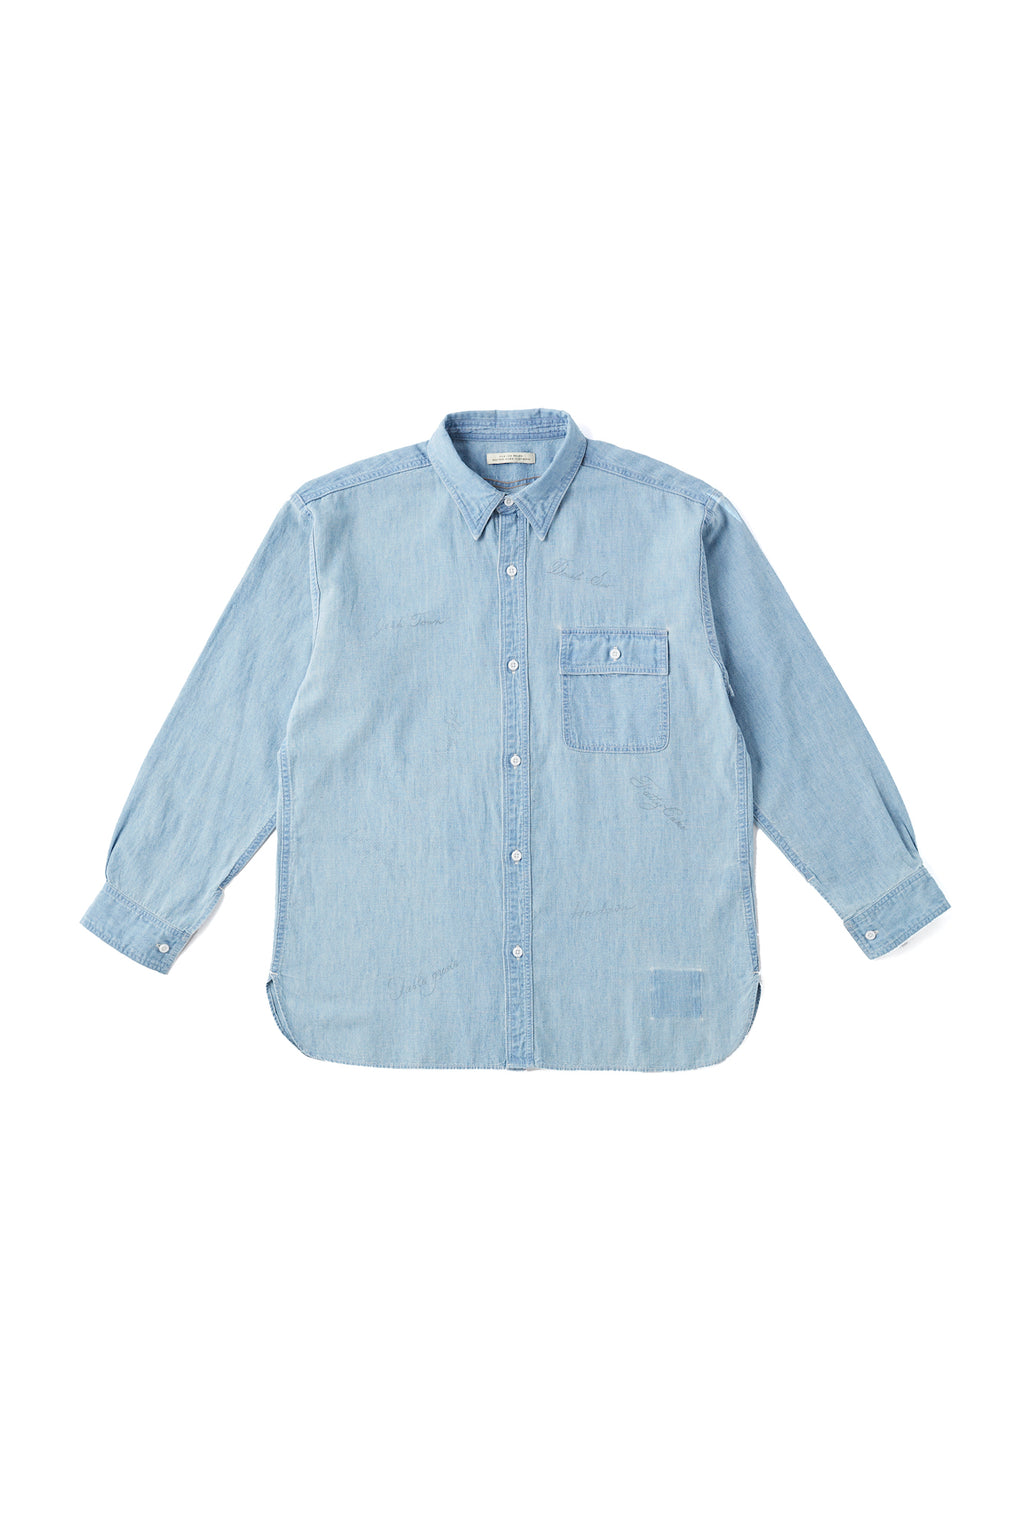 ONE POCKET MARINE SHIRTS - 201OJ-SH03